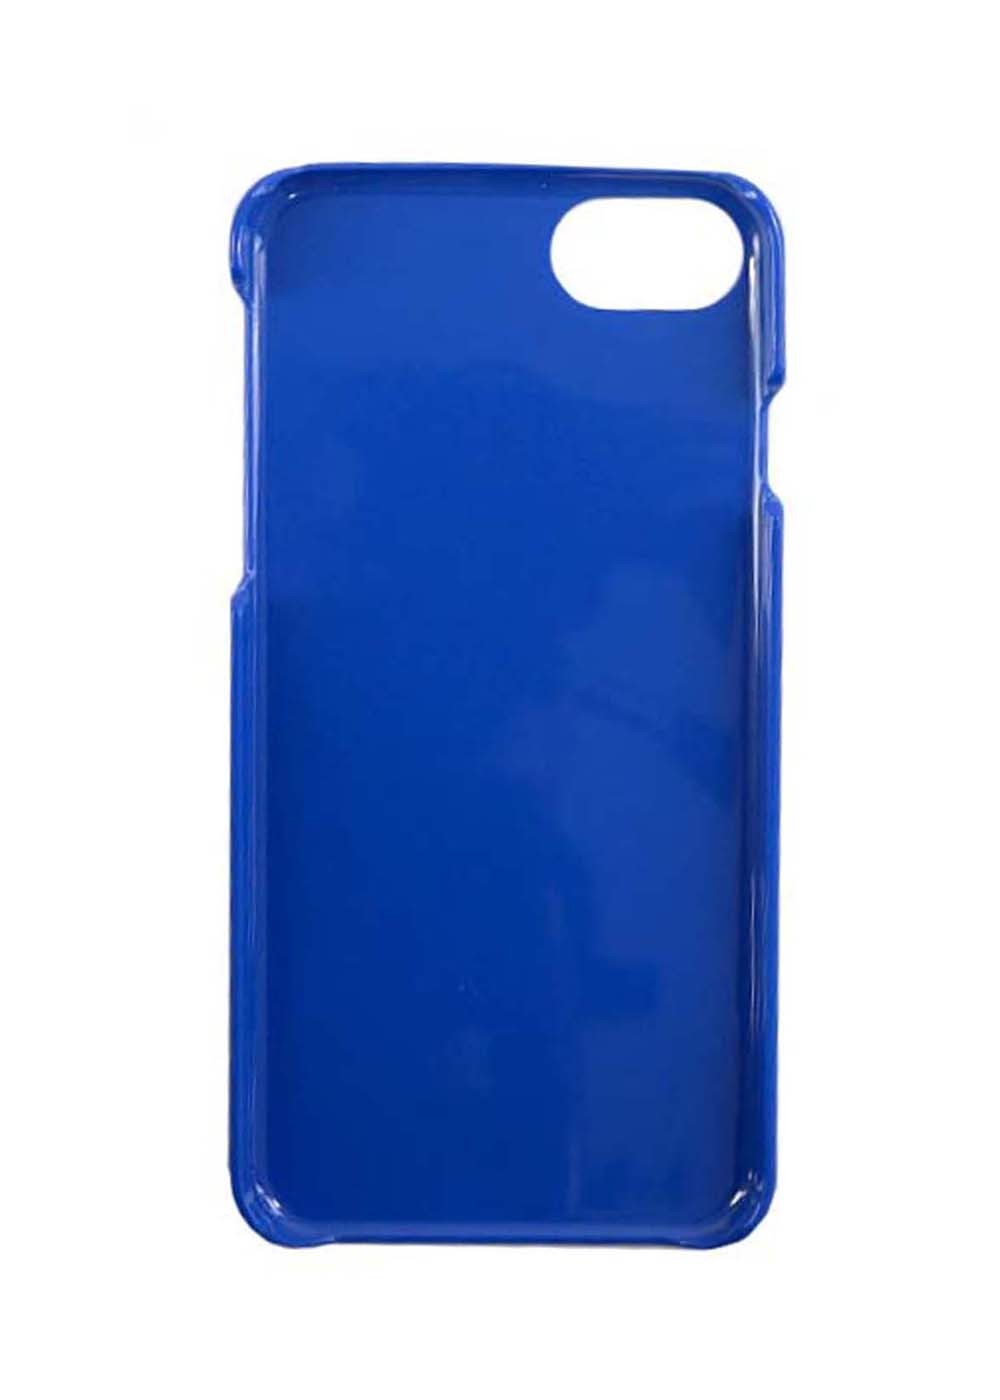 【最大35%OFF】IPHONE CASE PARISIEN|ROYAL BLUE|モバイルケース|MAISON KITSUNE(C)